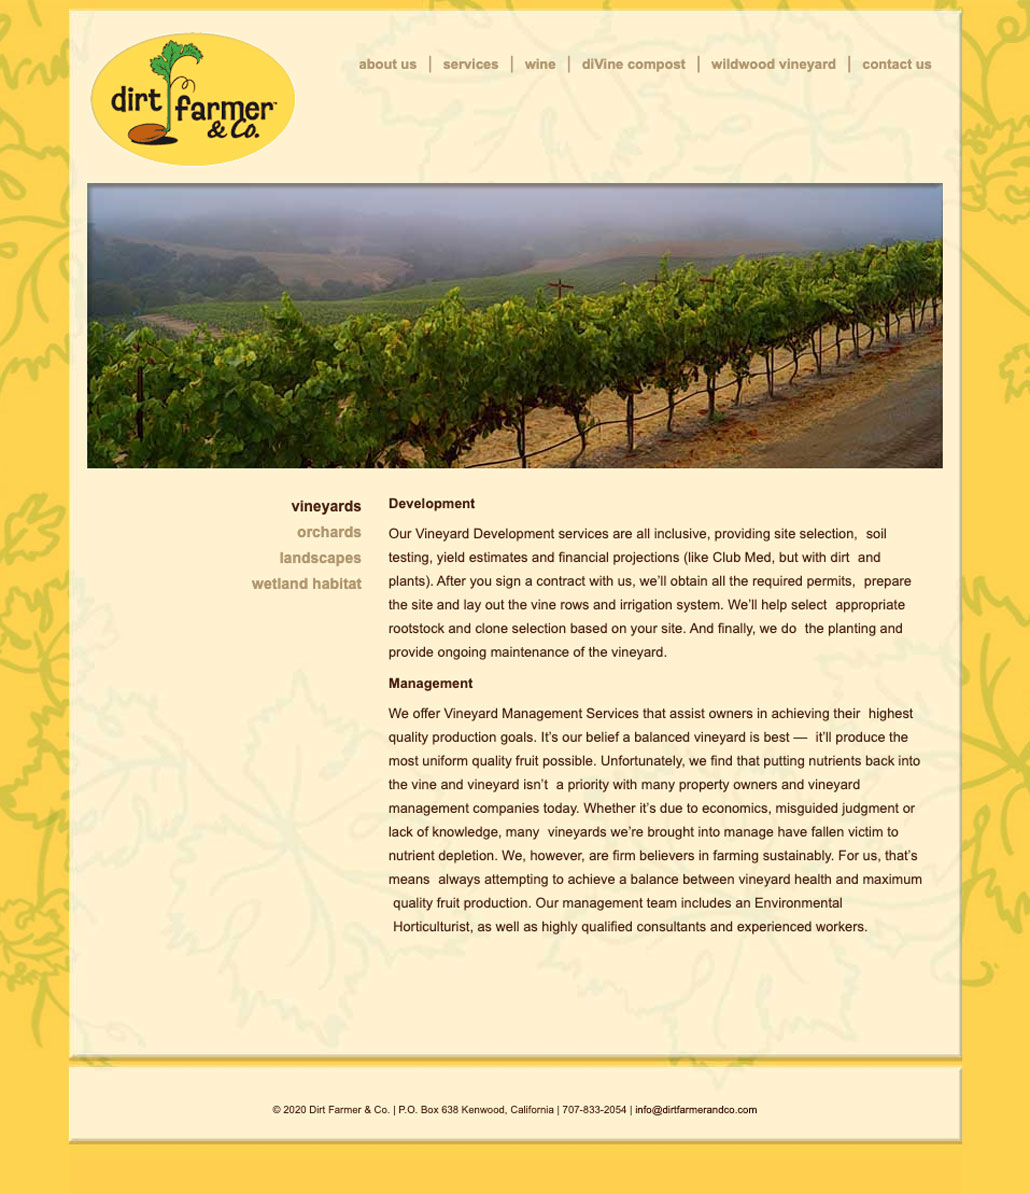 Dirt Farmers & Co. Vineyards Services